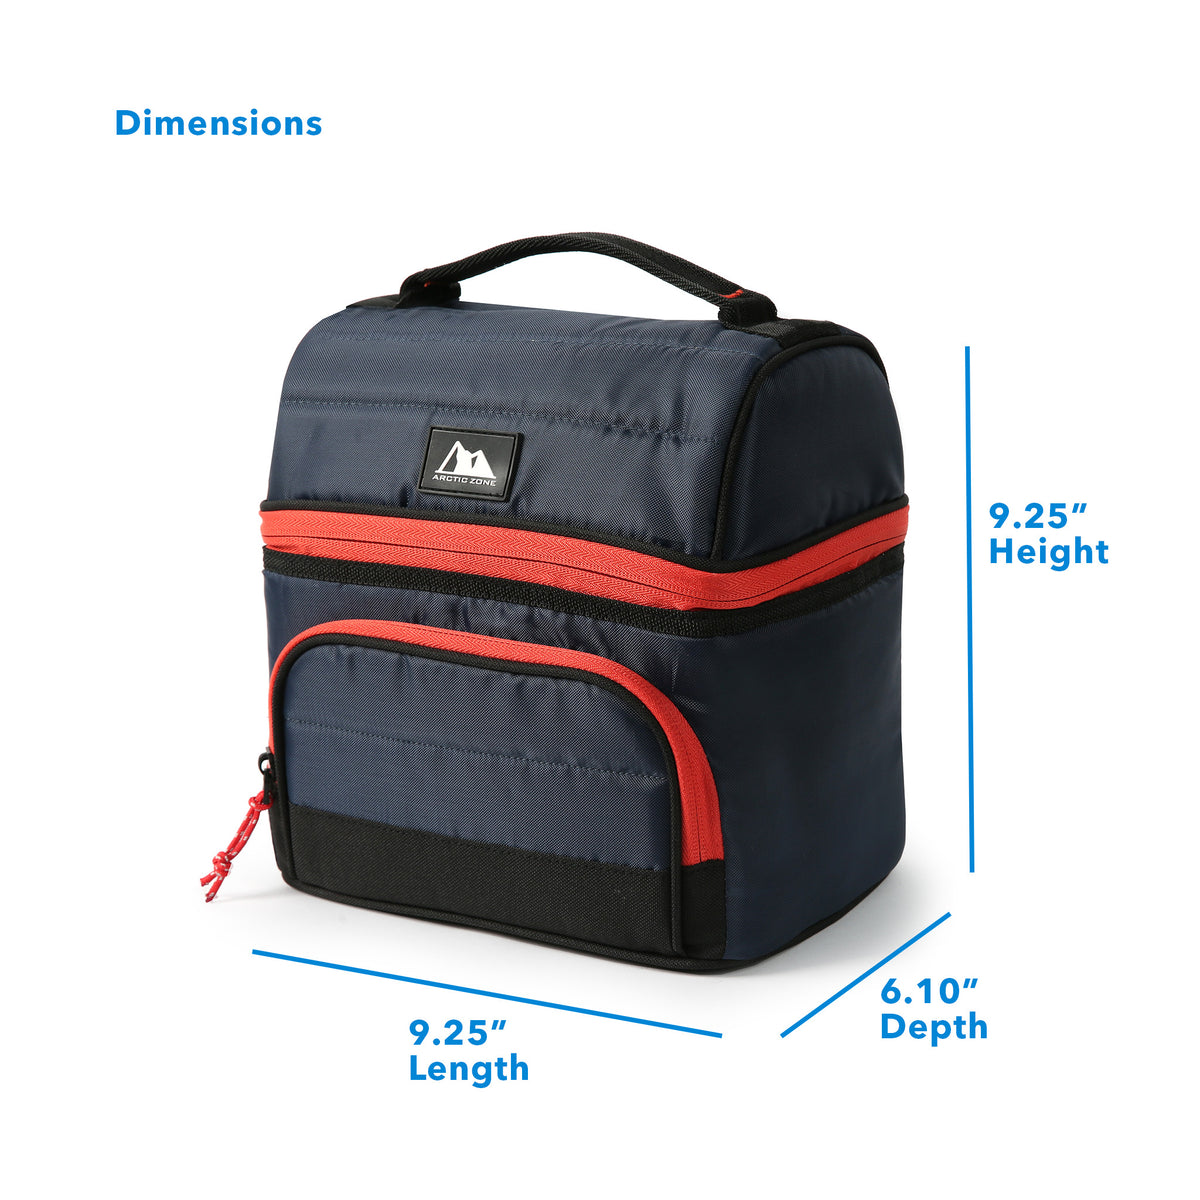 "Arctic Zone® High Performance Ultimate Secret Lunch Bucket - Navy - Dimensions: (L x D x H) 9.25"" x 6.10"" x 9.25"""